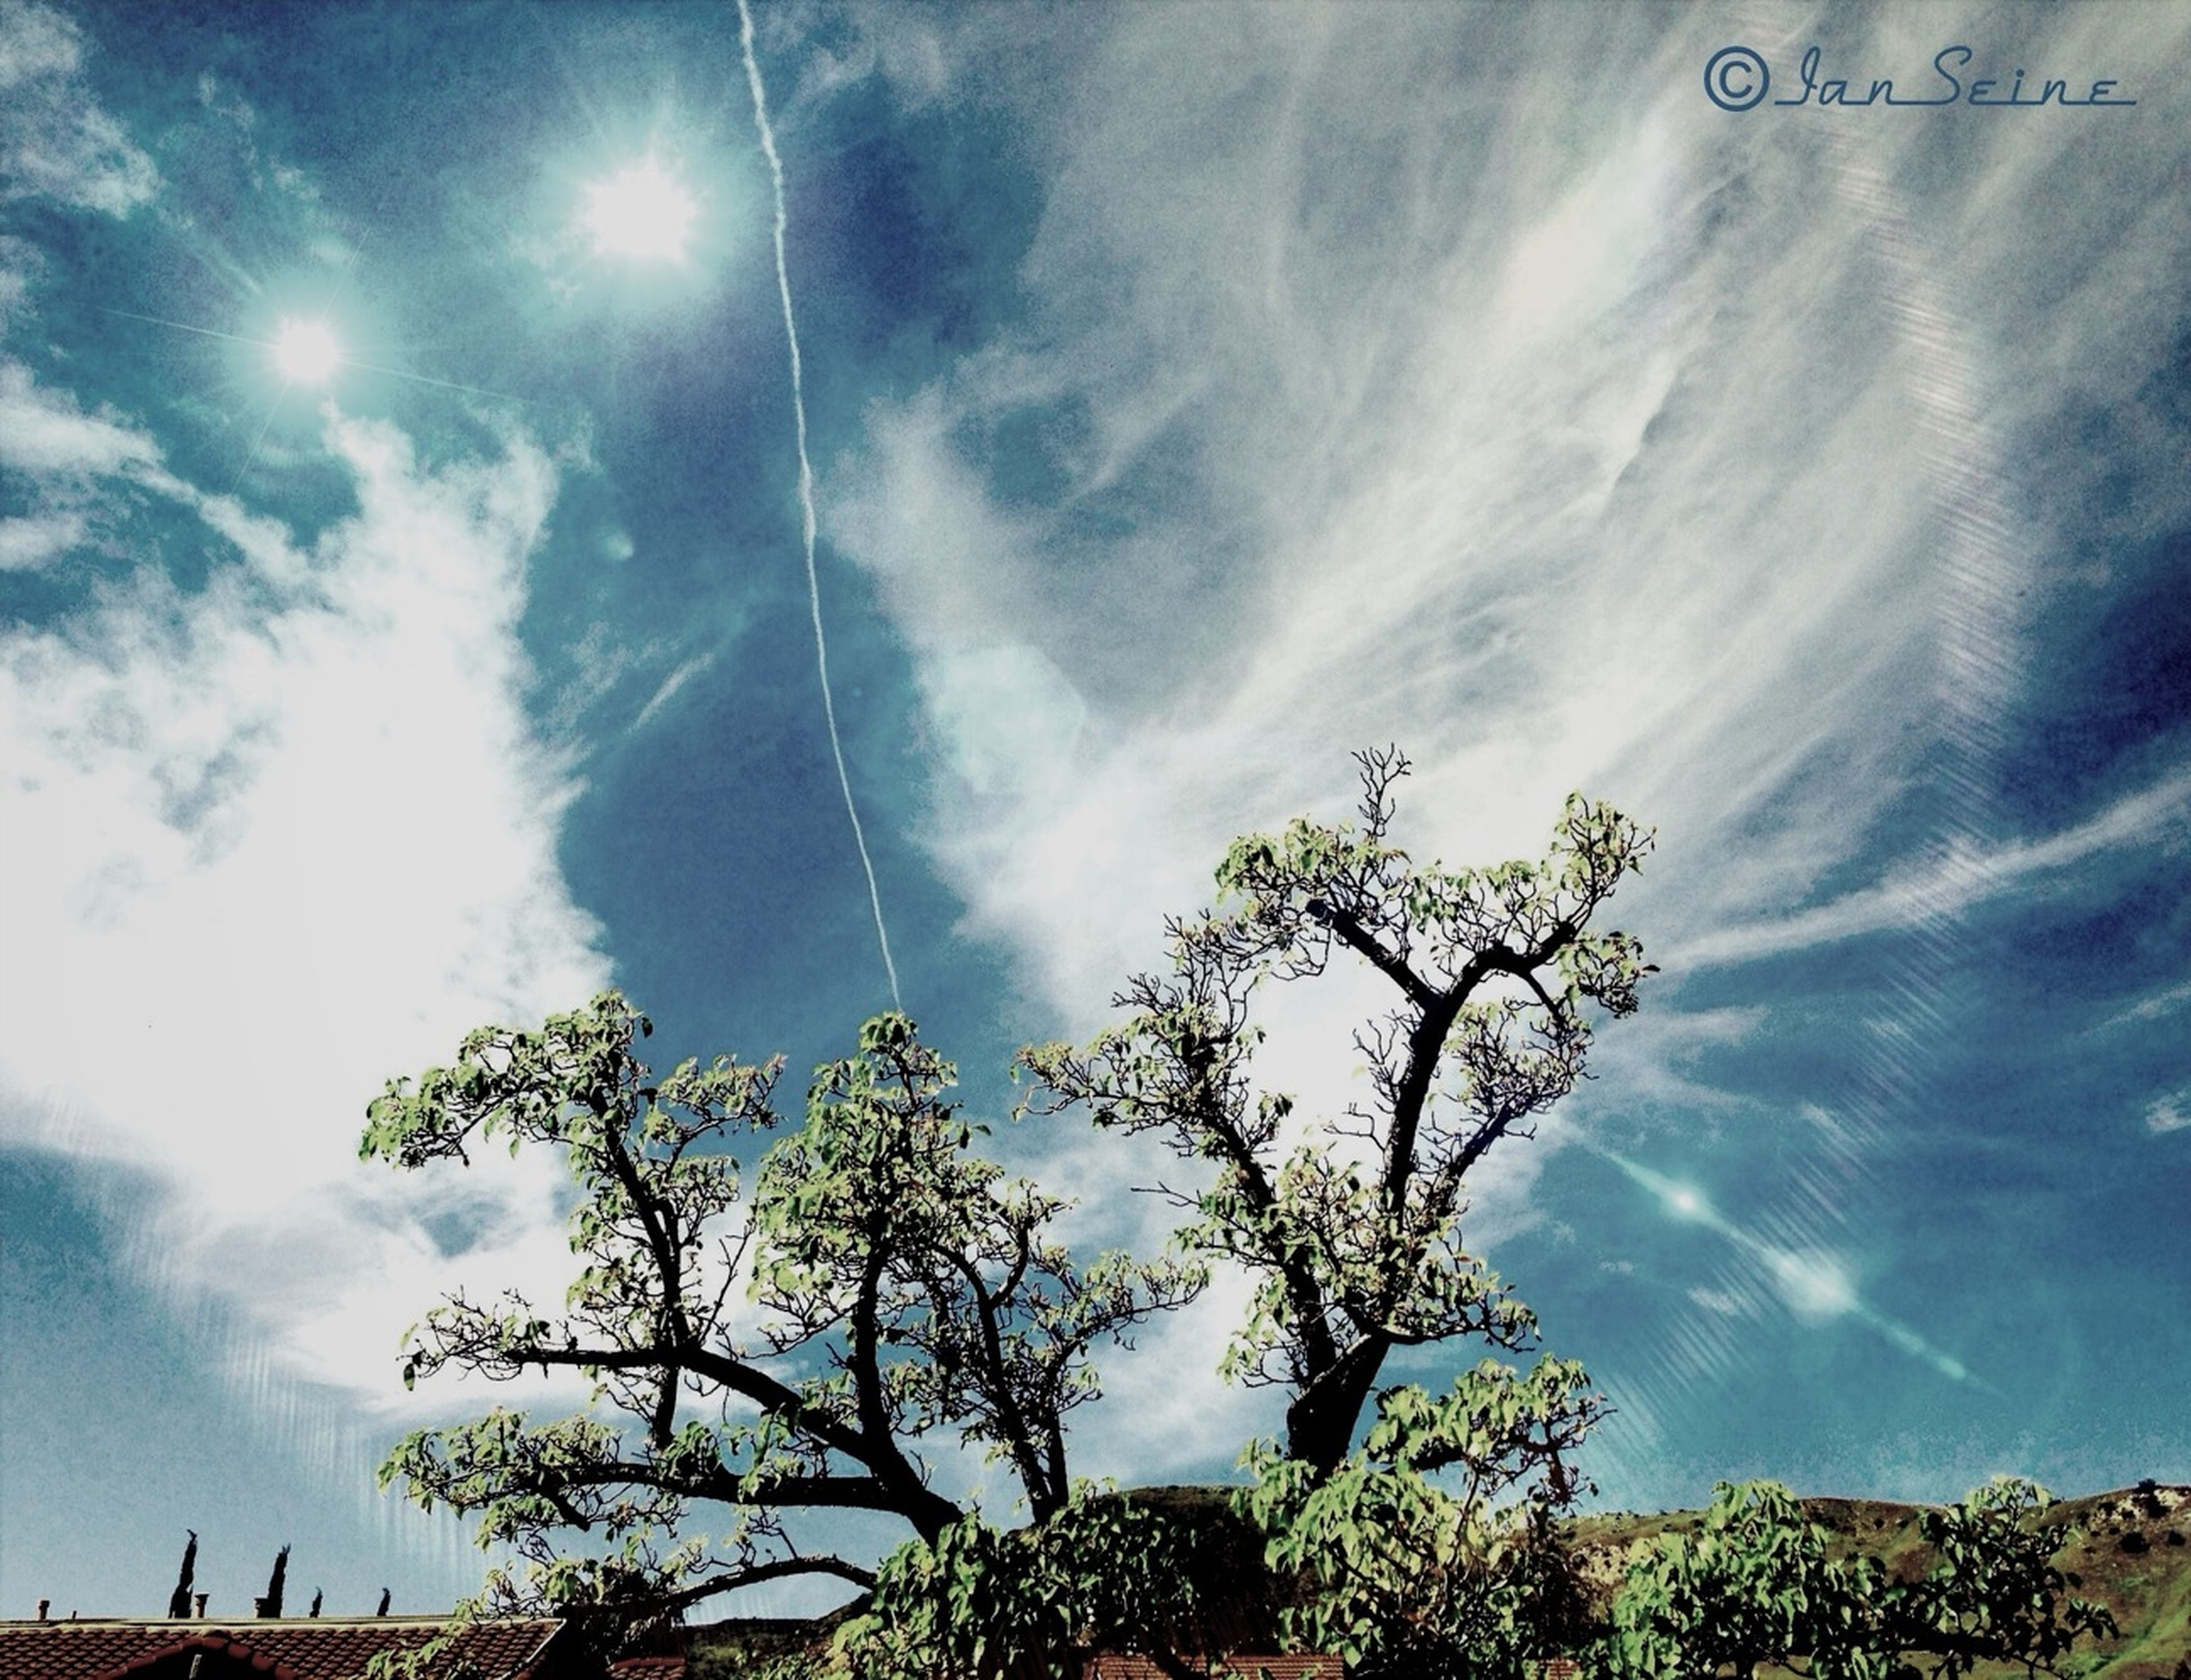 low angle view, sky, tree, cloud - sky, cloudy, nature, growth, cloud, branch, tranquility, beauty in nature, blue, day, outdoors, no people, sunlight, scenics, high section, street light, treetop